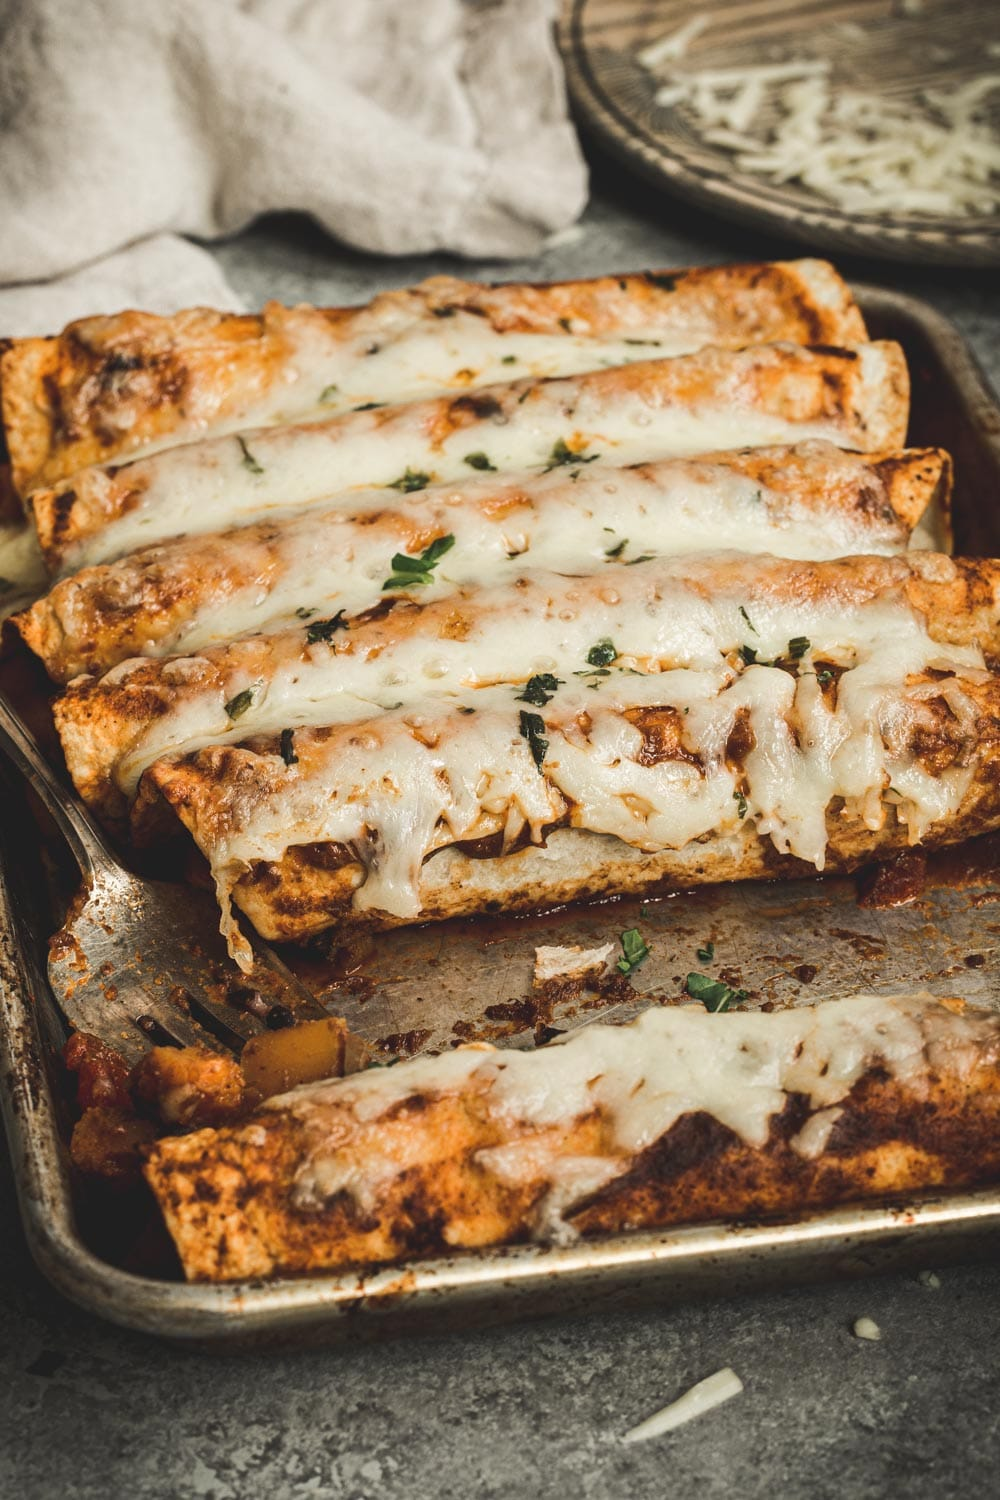 Vegetable enchiladas on a rimmed baking sheet with a silver spatula.